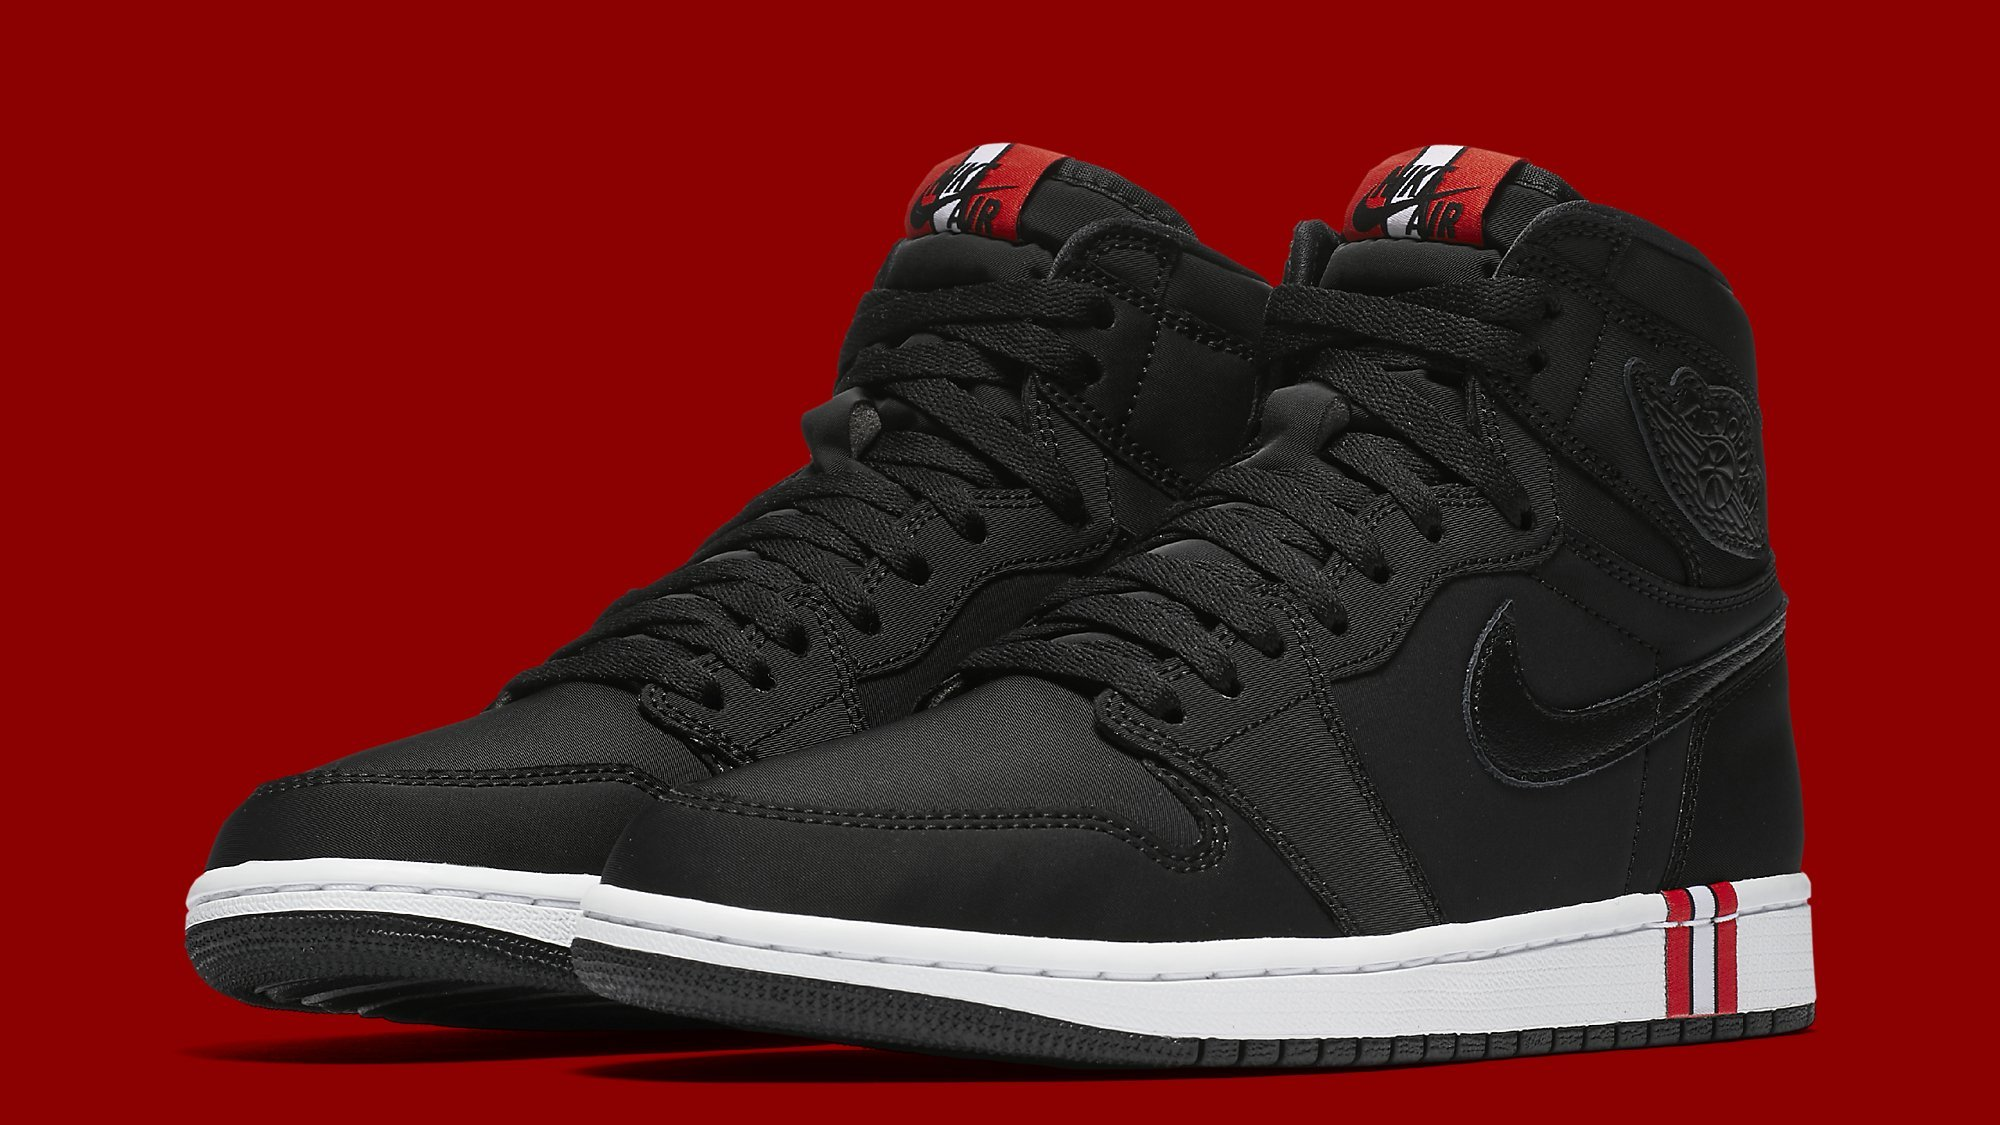 Air Jordan 1 High  Paris Saint-Germain  Release Date AR3254-001 ... b0165902c